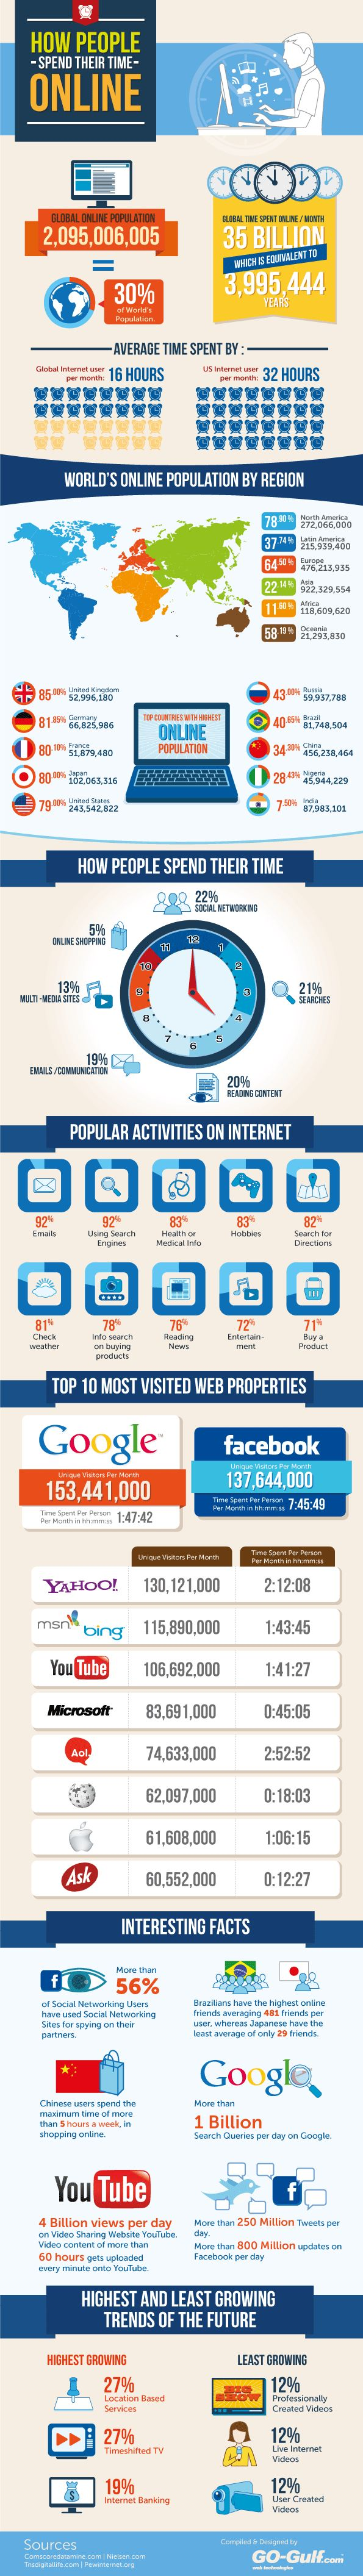 How people spend their time #online, #infographic